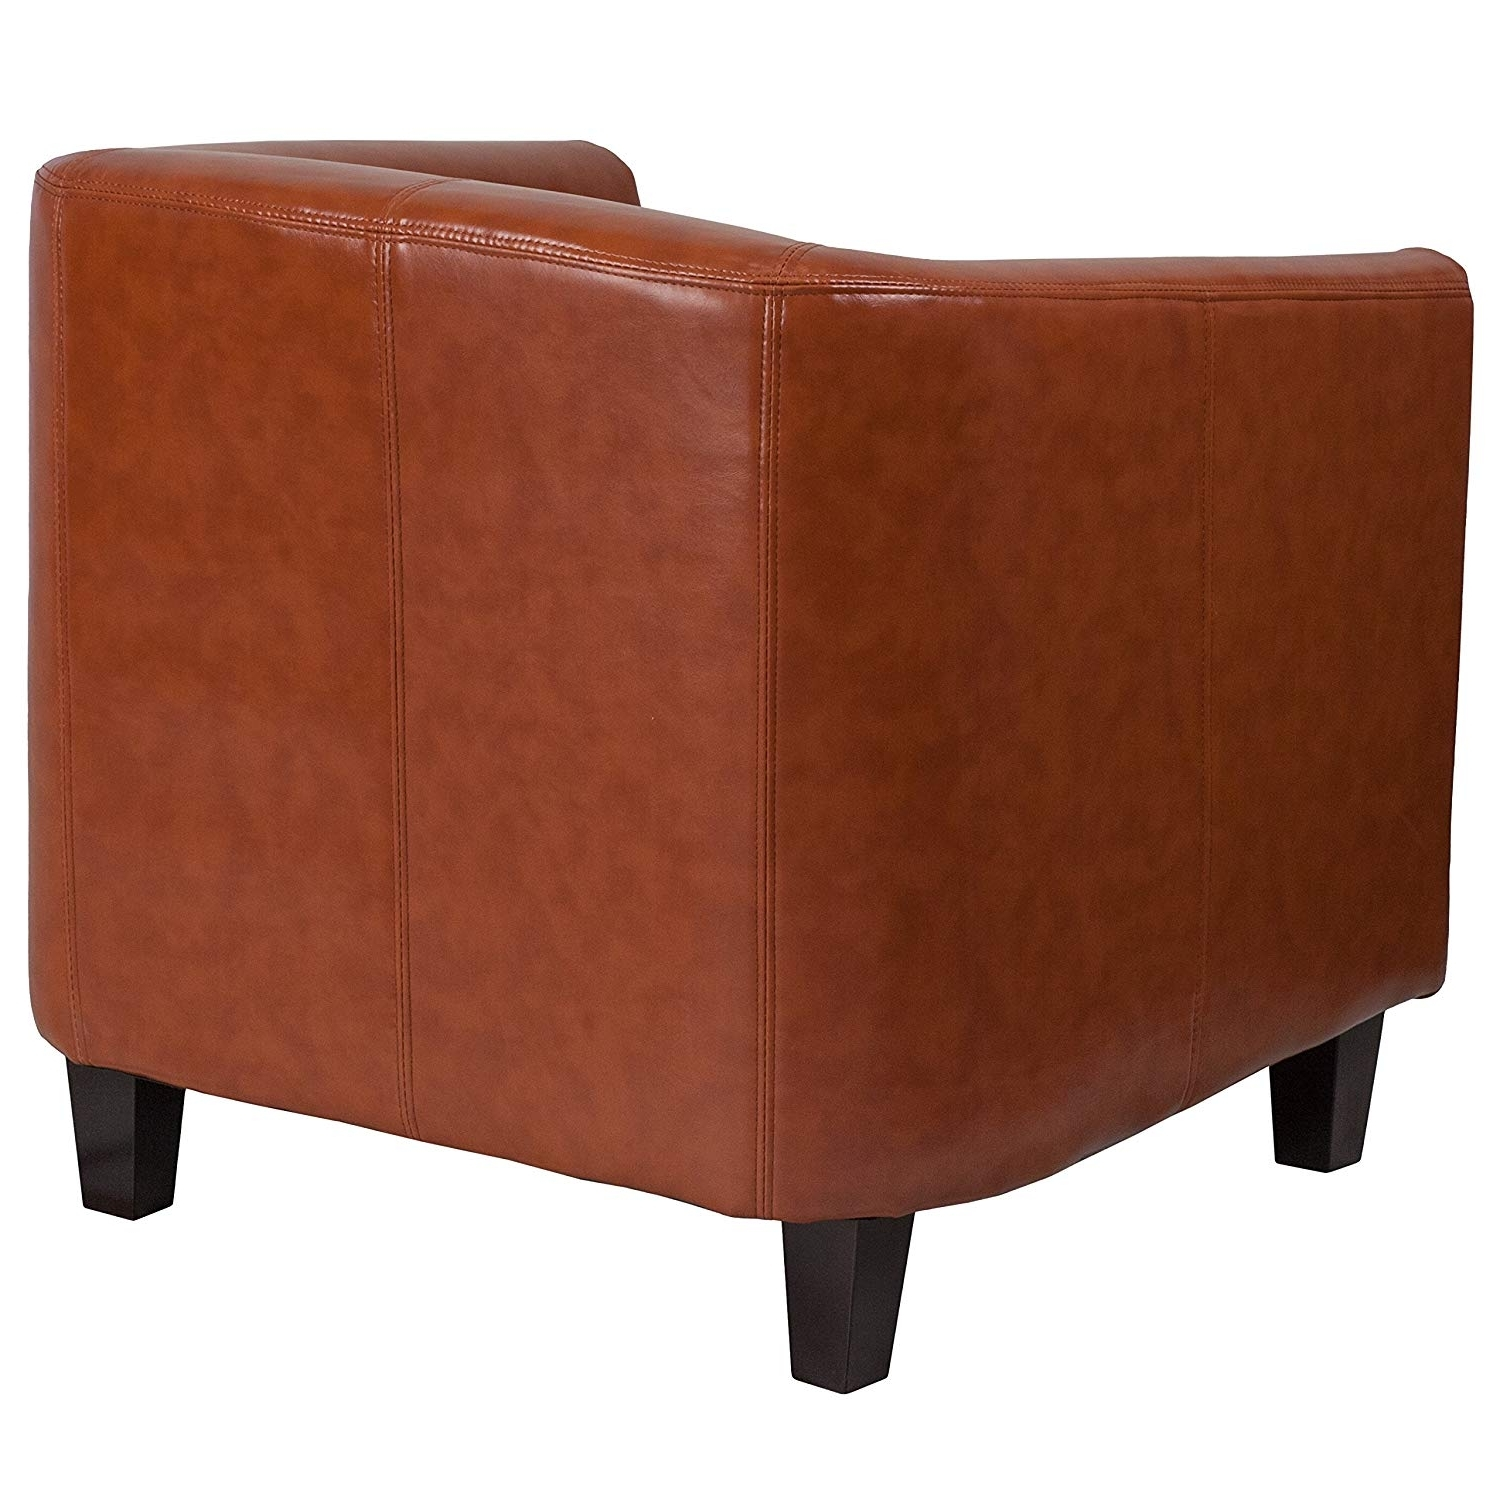 Popular Amazon: Flash Furniture Cognac Leather Lounge Chair: Kitchen Throughout Hayden Cognac Side Chairs (View 16 of 20)